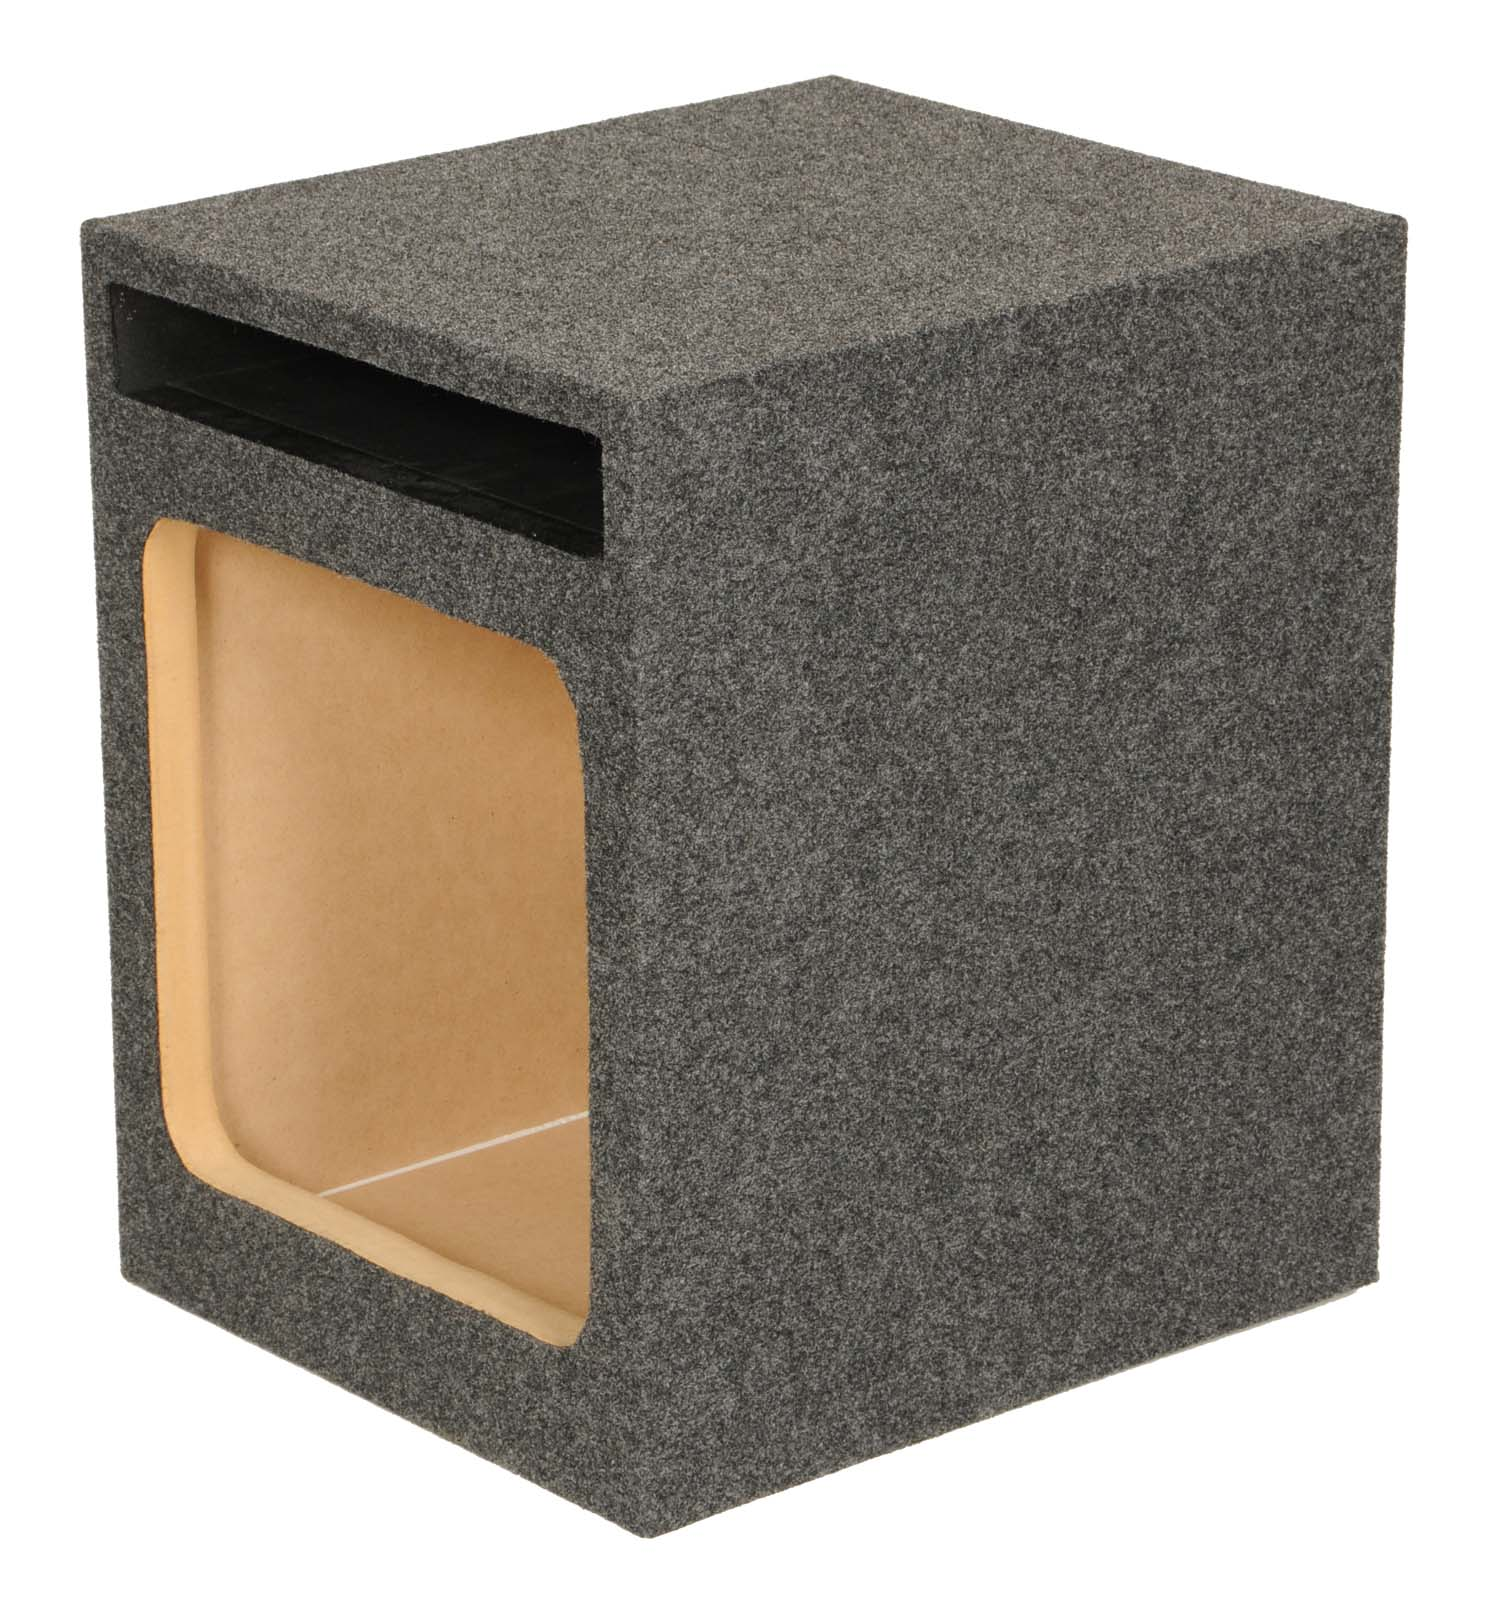 "Q Power HD112 12"" Single Heavy Duty Vented Square Subwoofer Sub Enclosure Box"